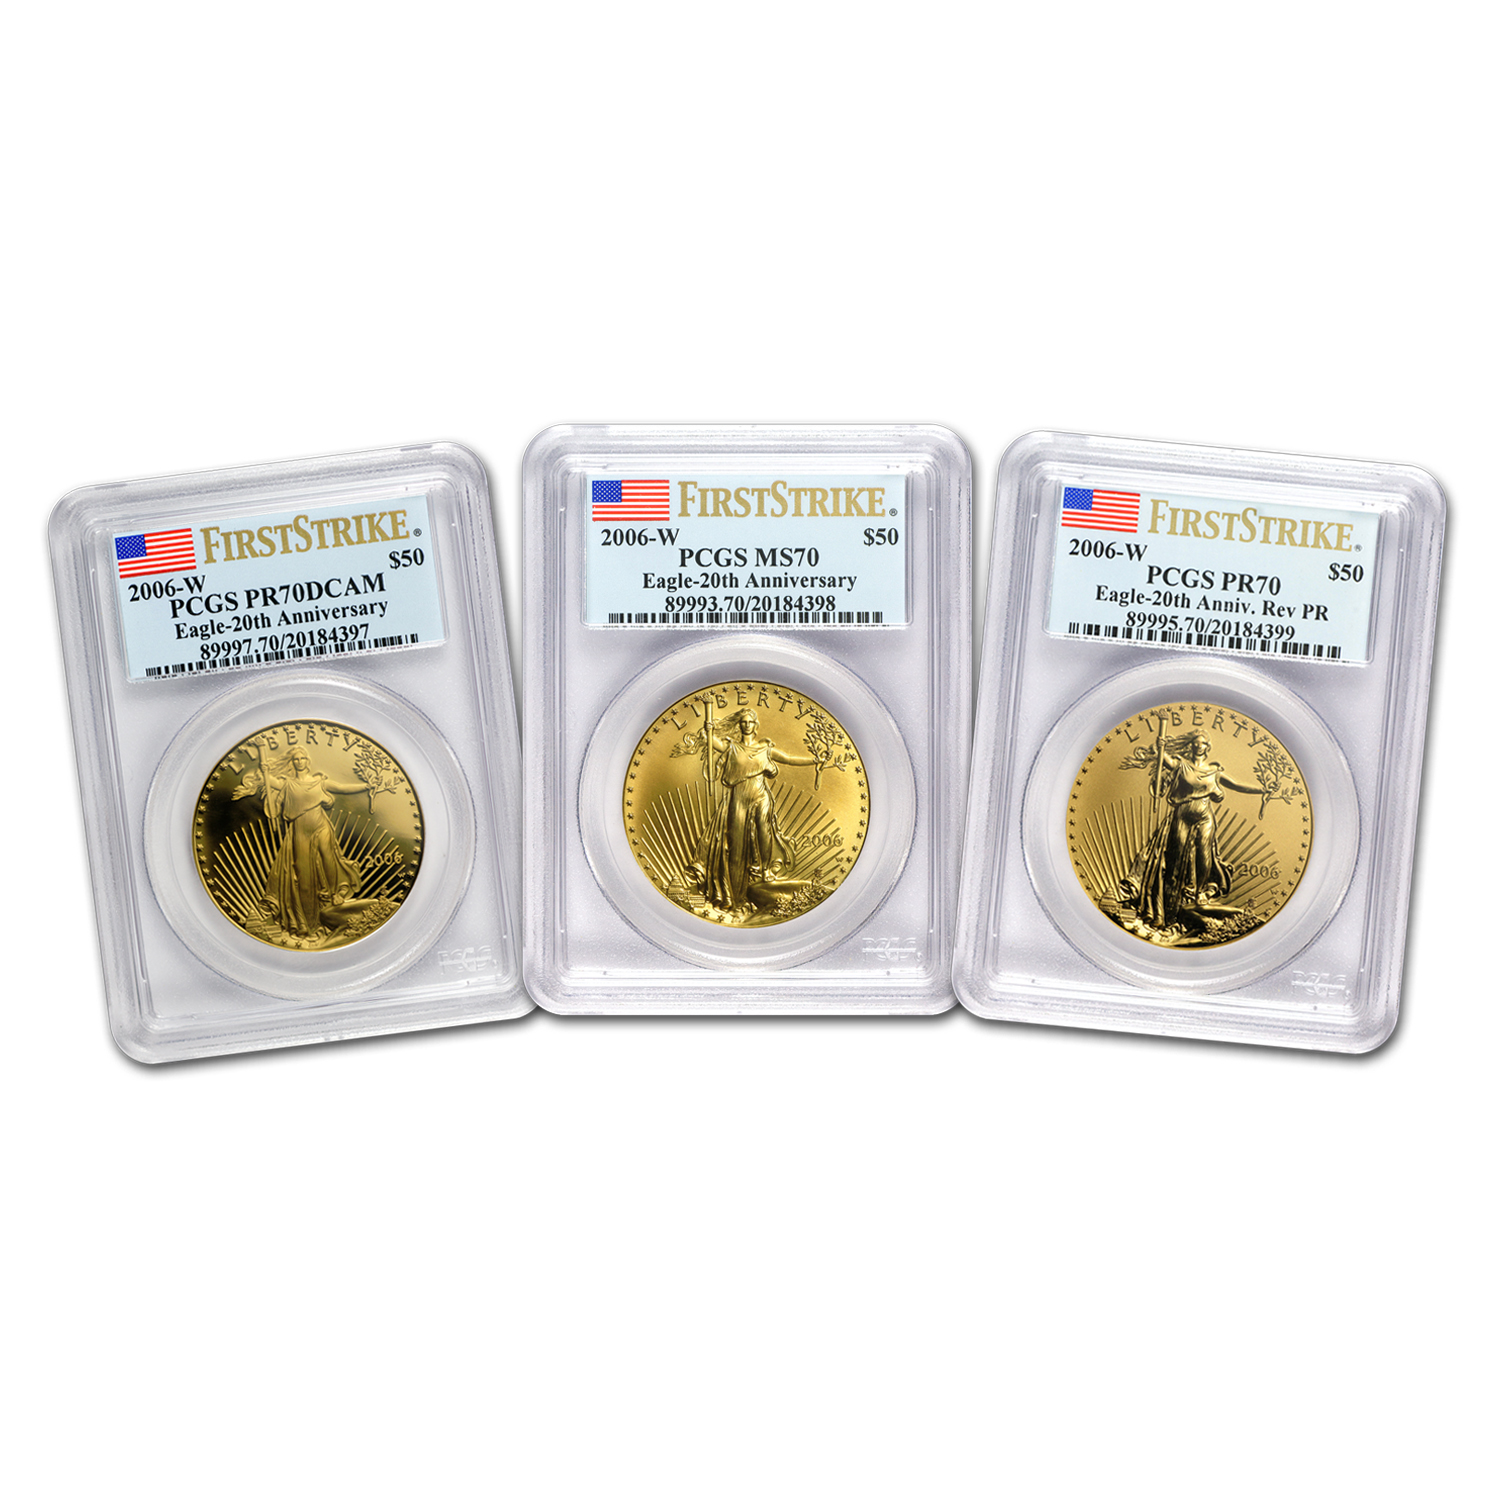 2006-W 3-Coin Gold Eagle Set MS/PR-70 PCGS (FS, Registry Set)